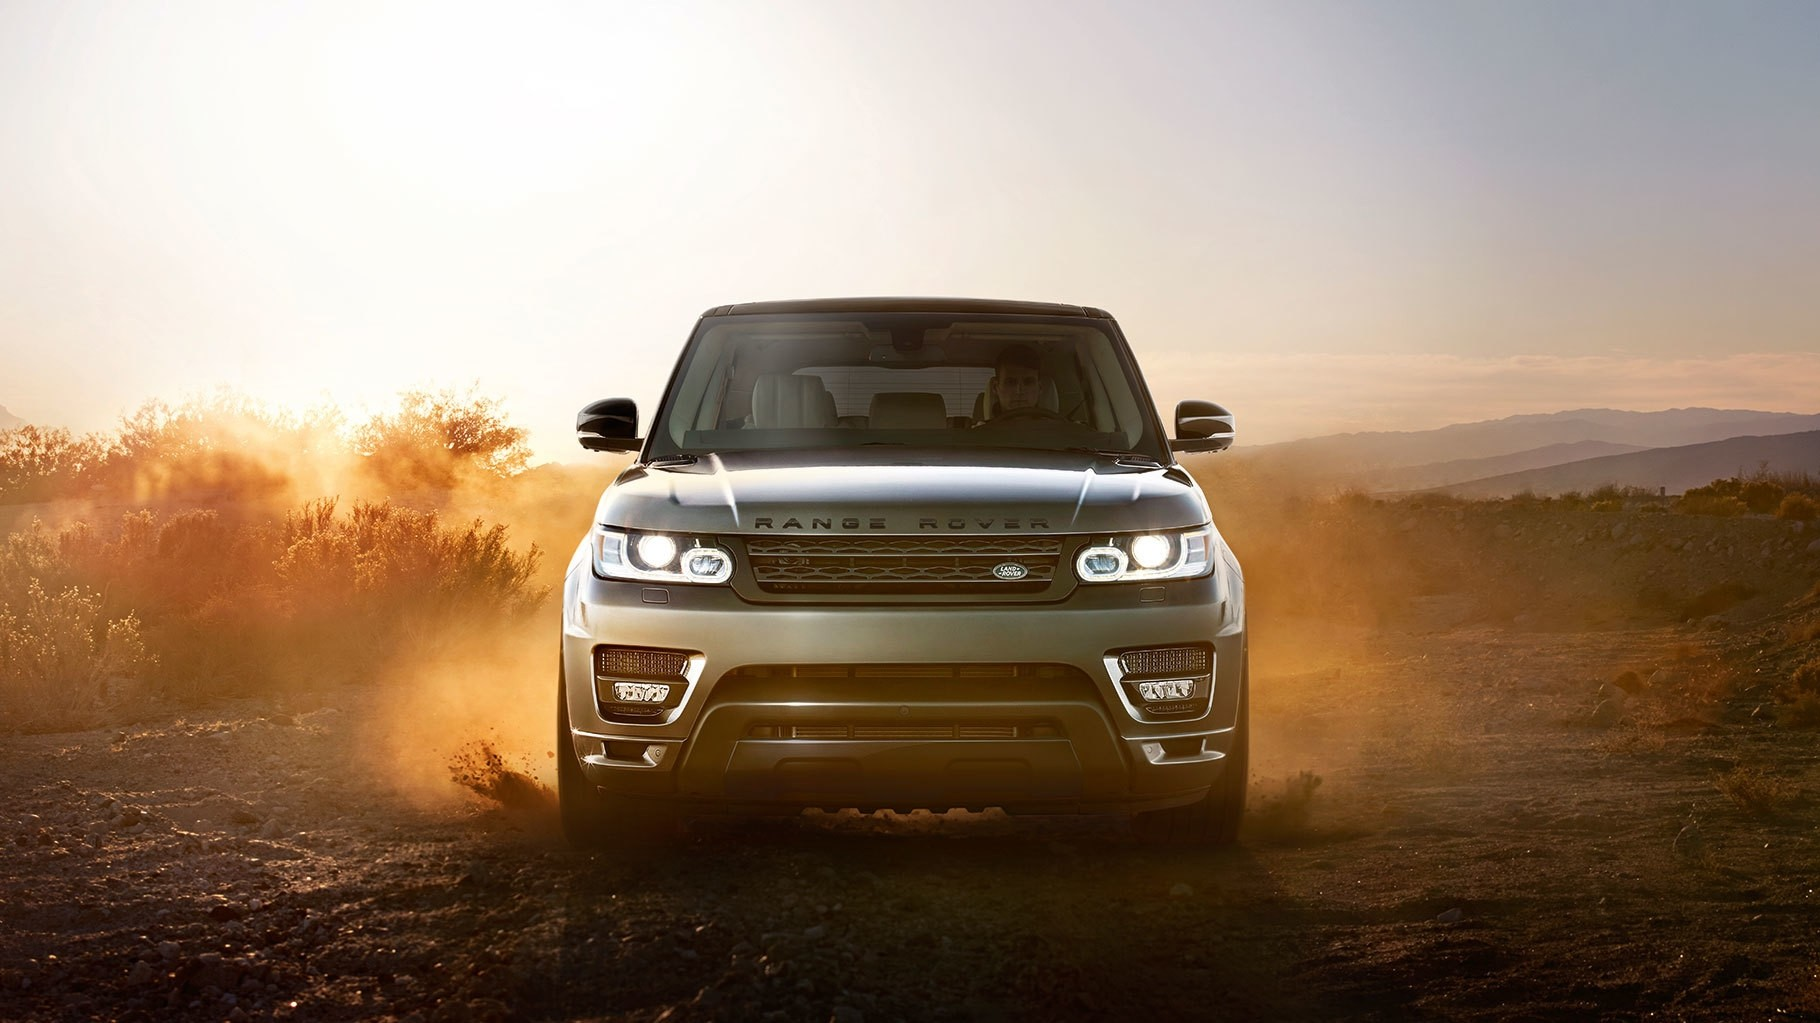 2017 Land Rover Range Rover Sport Exterior front end